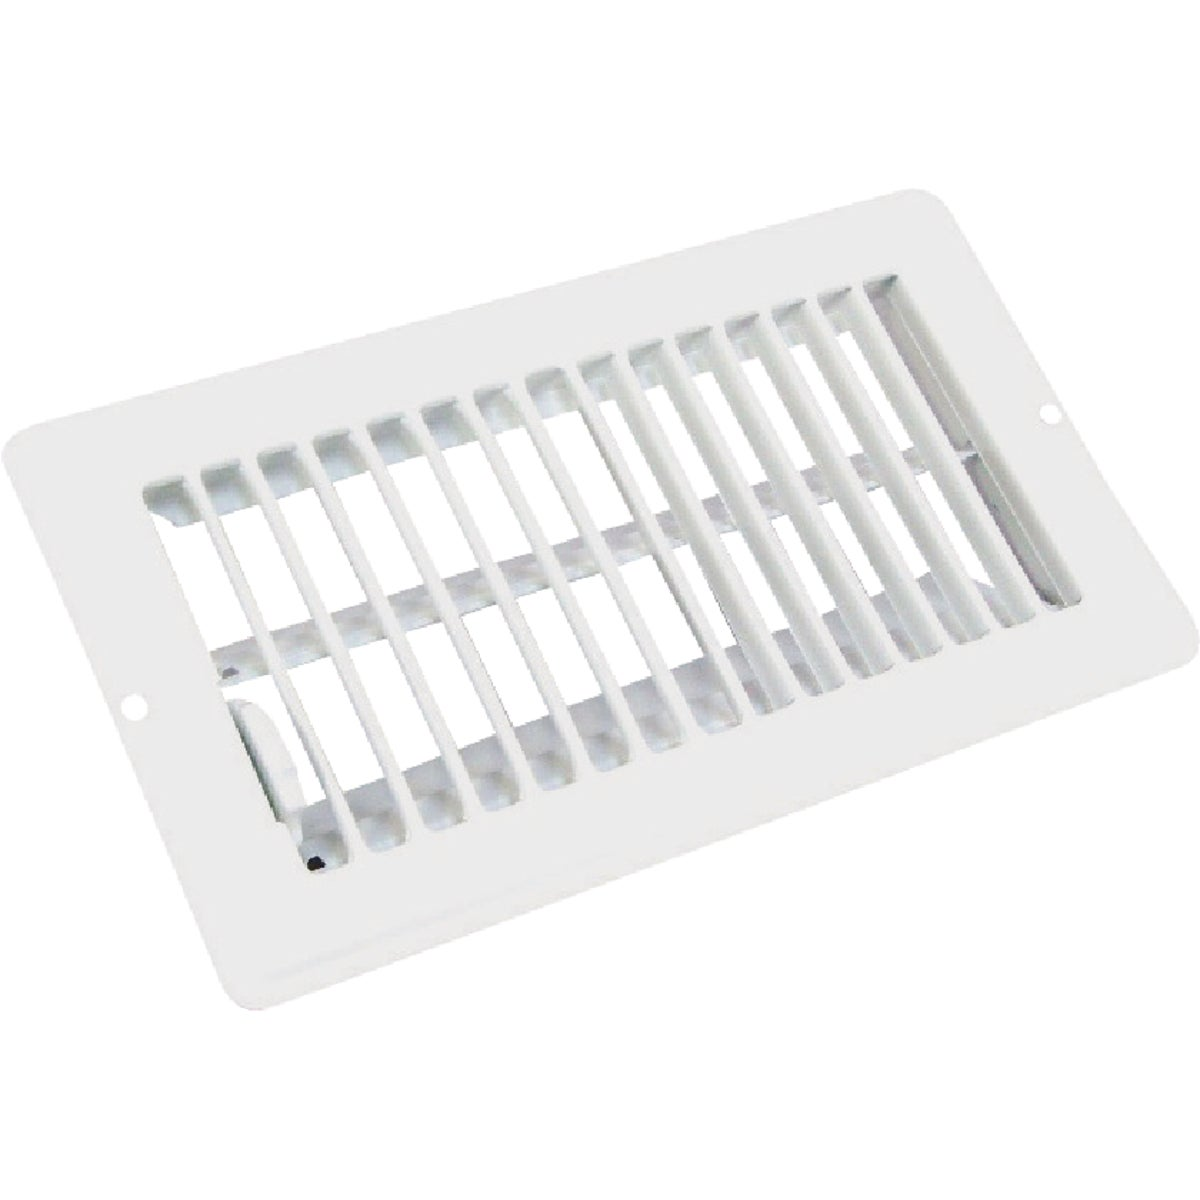 4X8 WHT FLOOR REGISTER - V-056IWB by U S Hardware